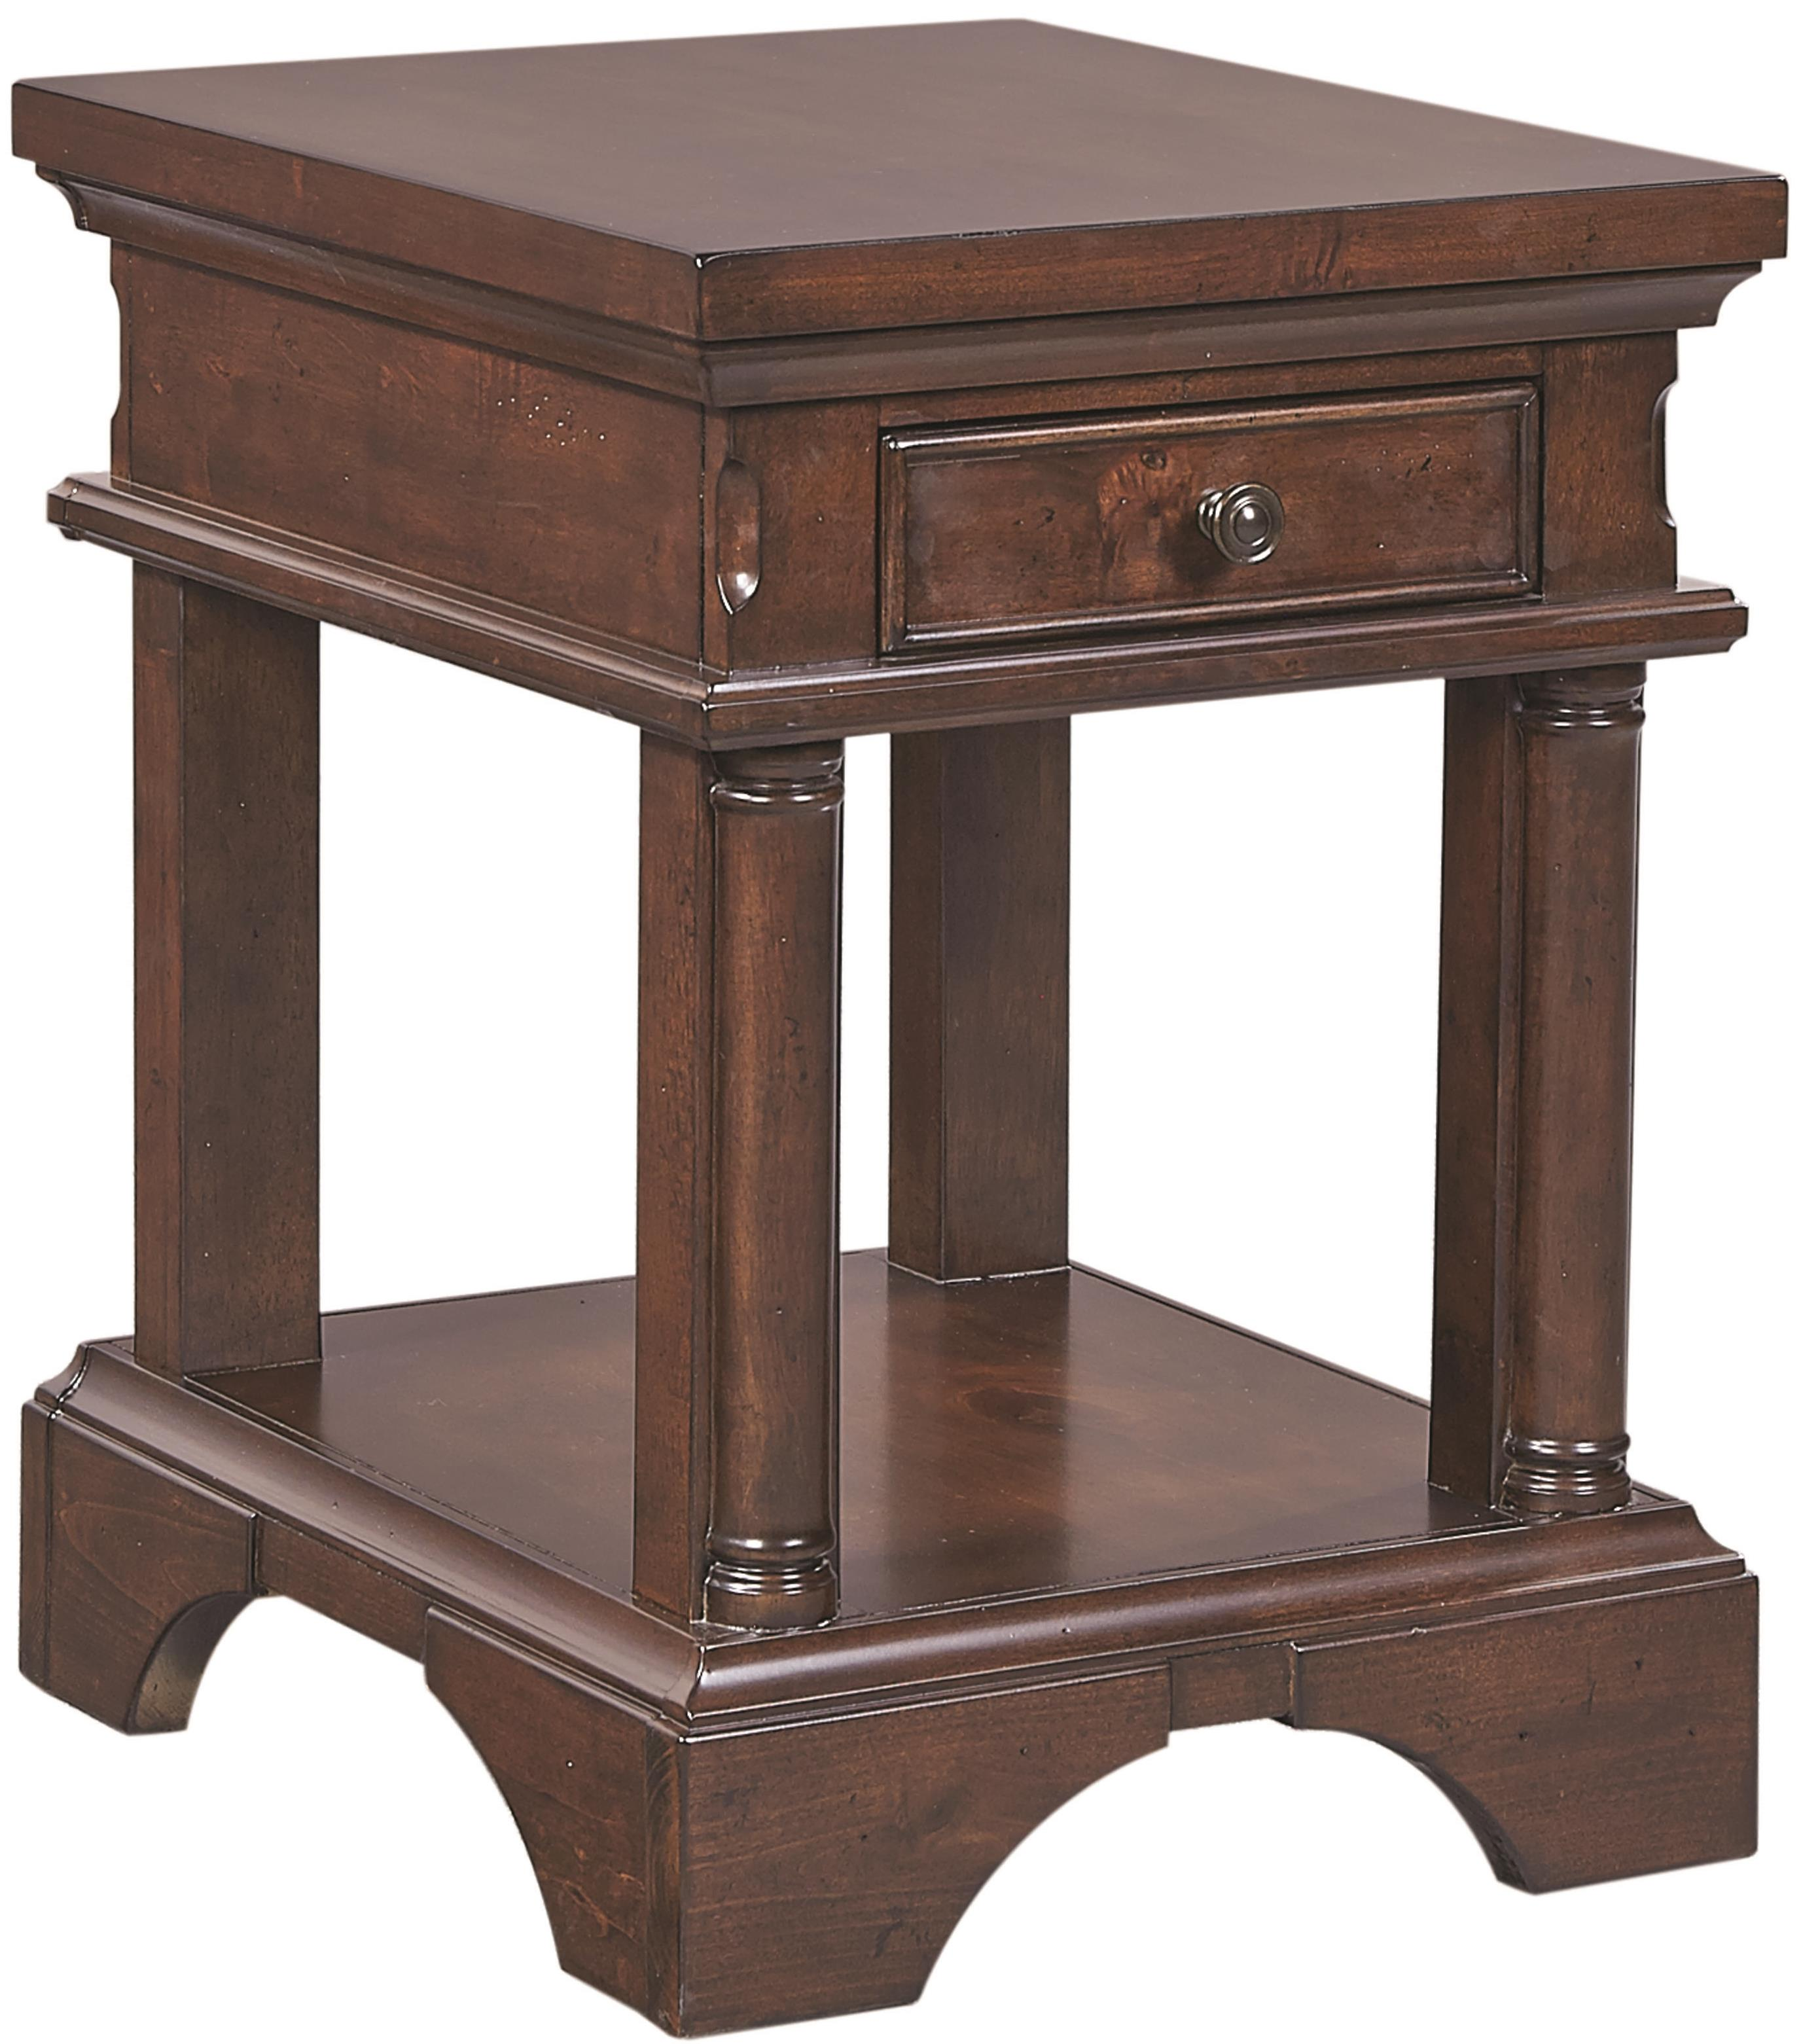 Aspenhome Bancroft Chairside Table with Power - Item Number: I08-9130